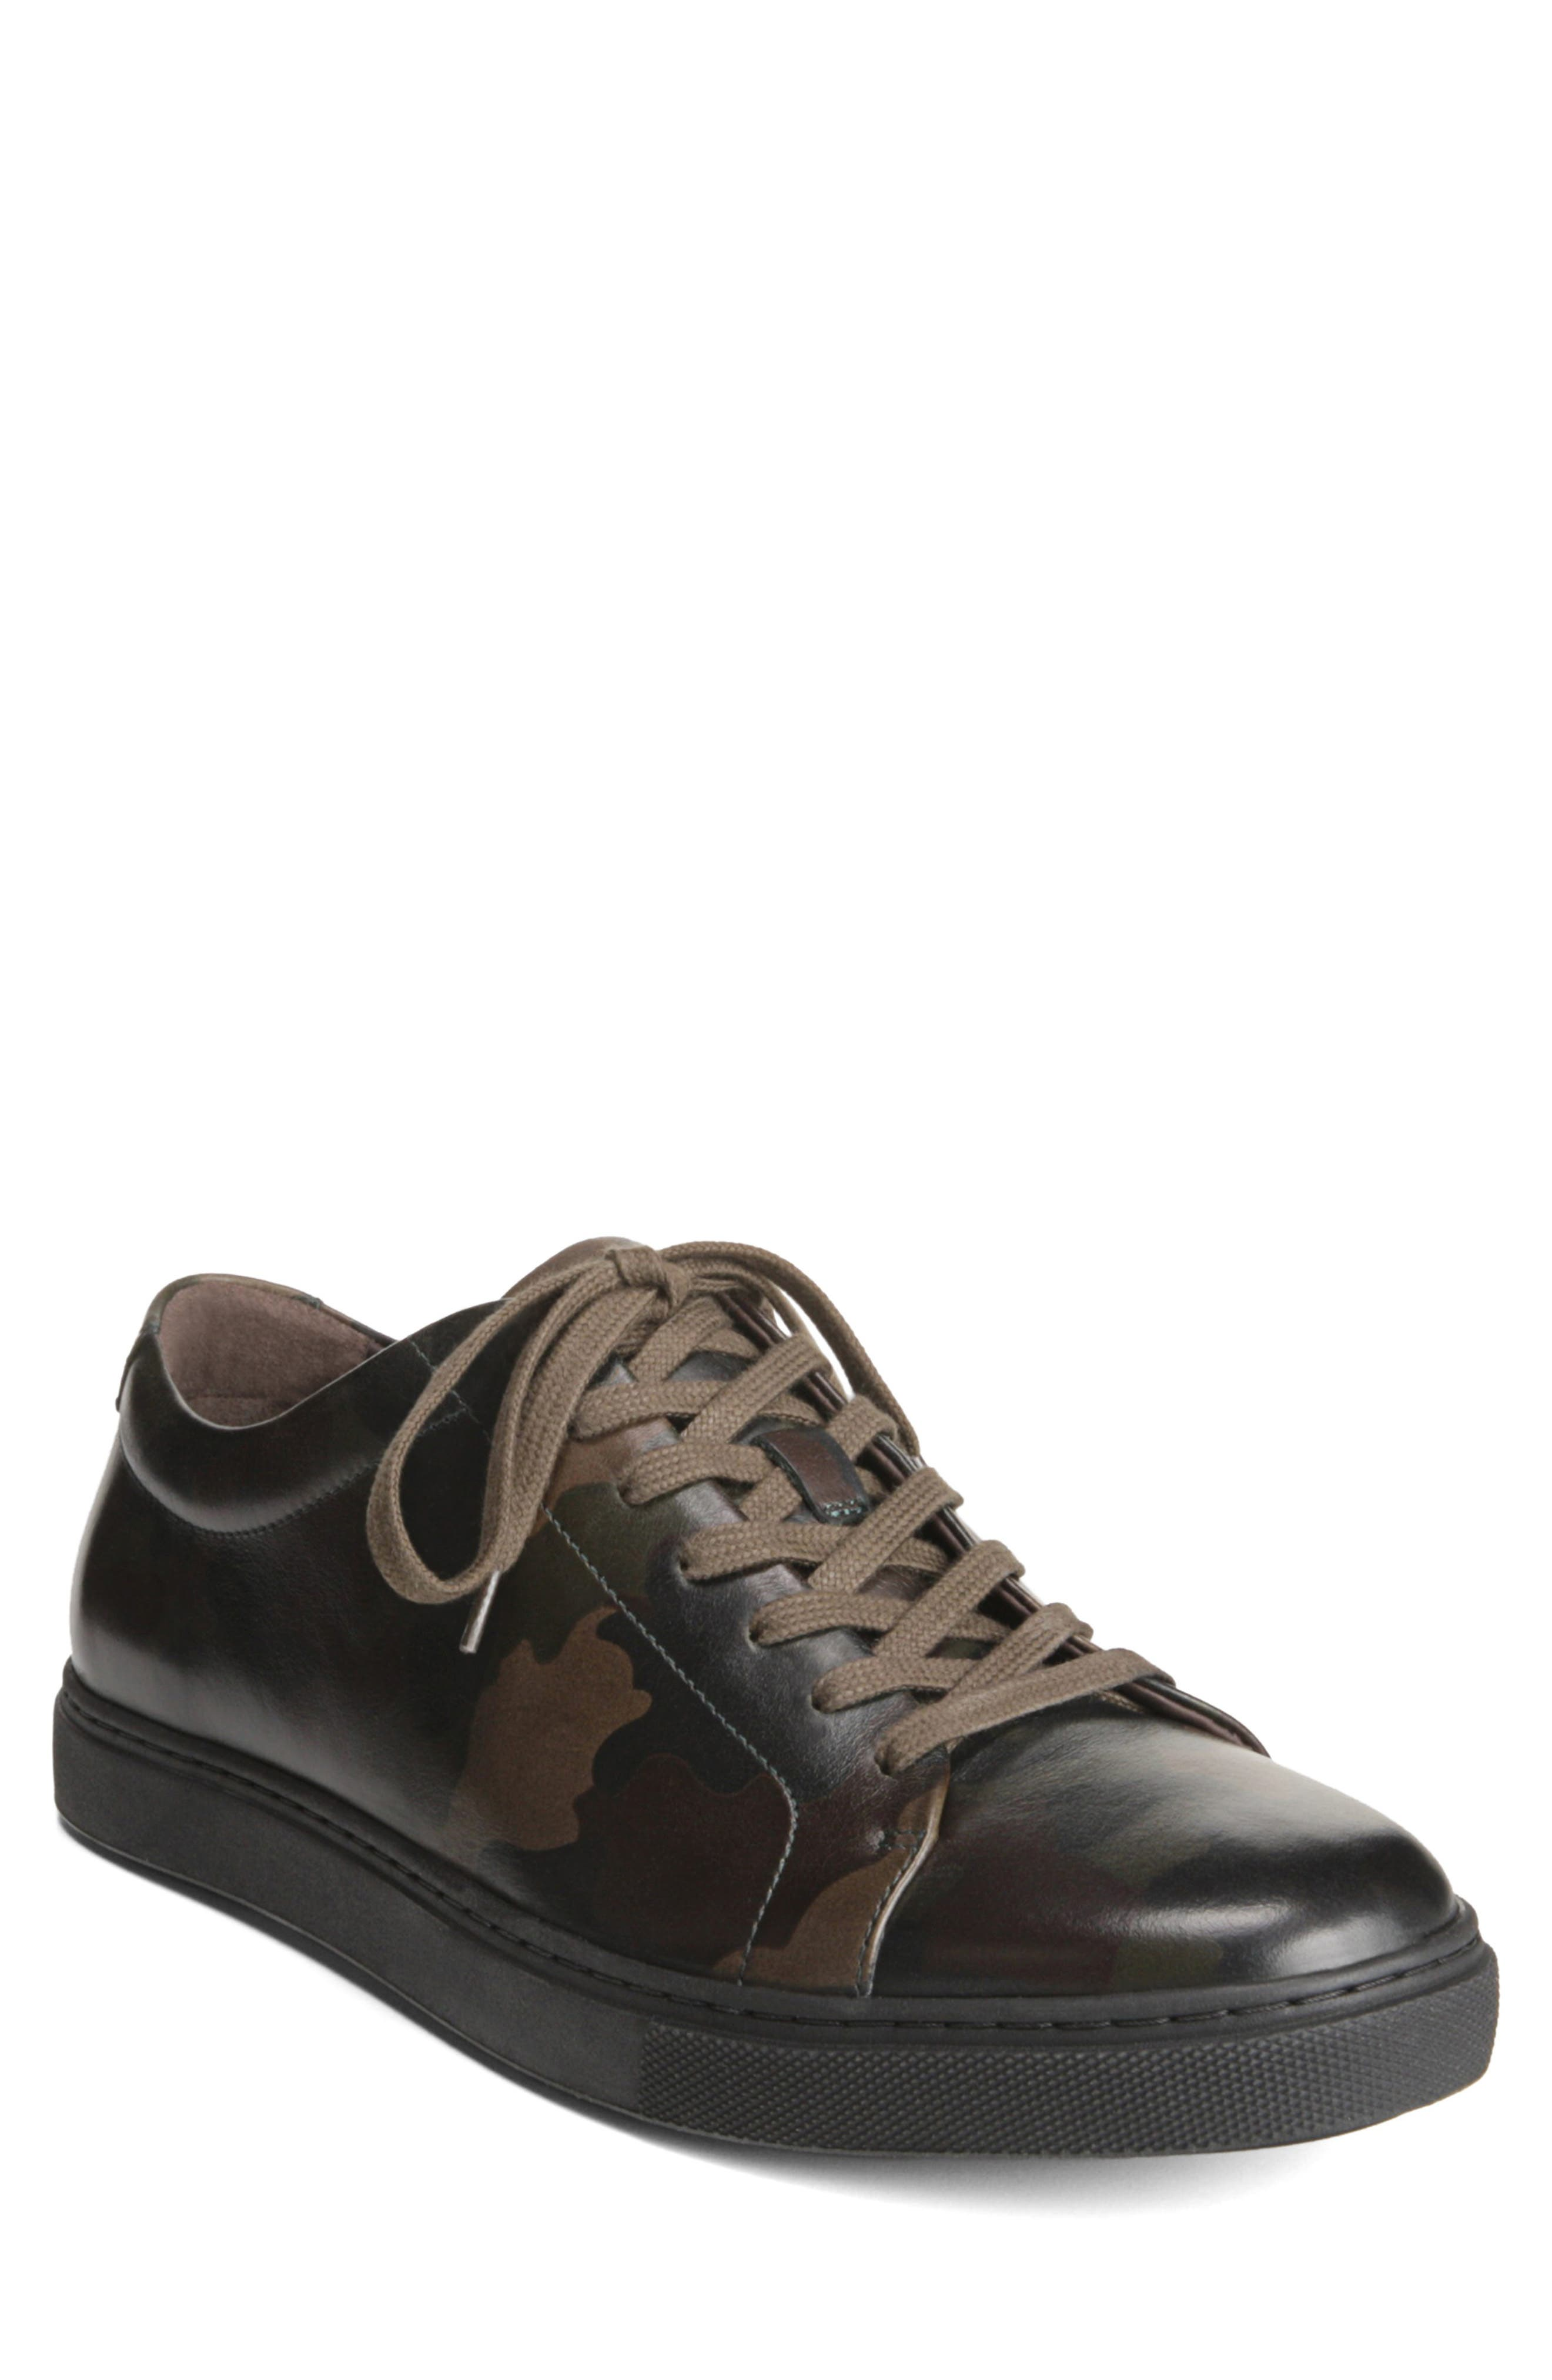 ALLEN EDMONDS Canal Court Sneaker in Camouflage Leather